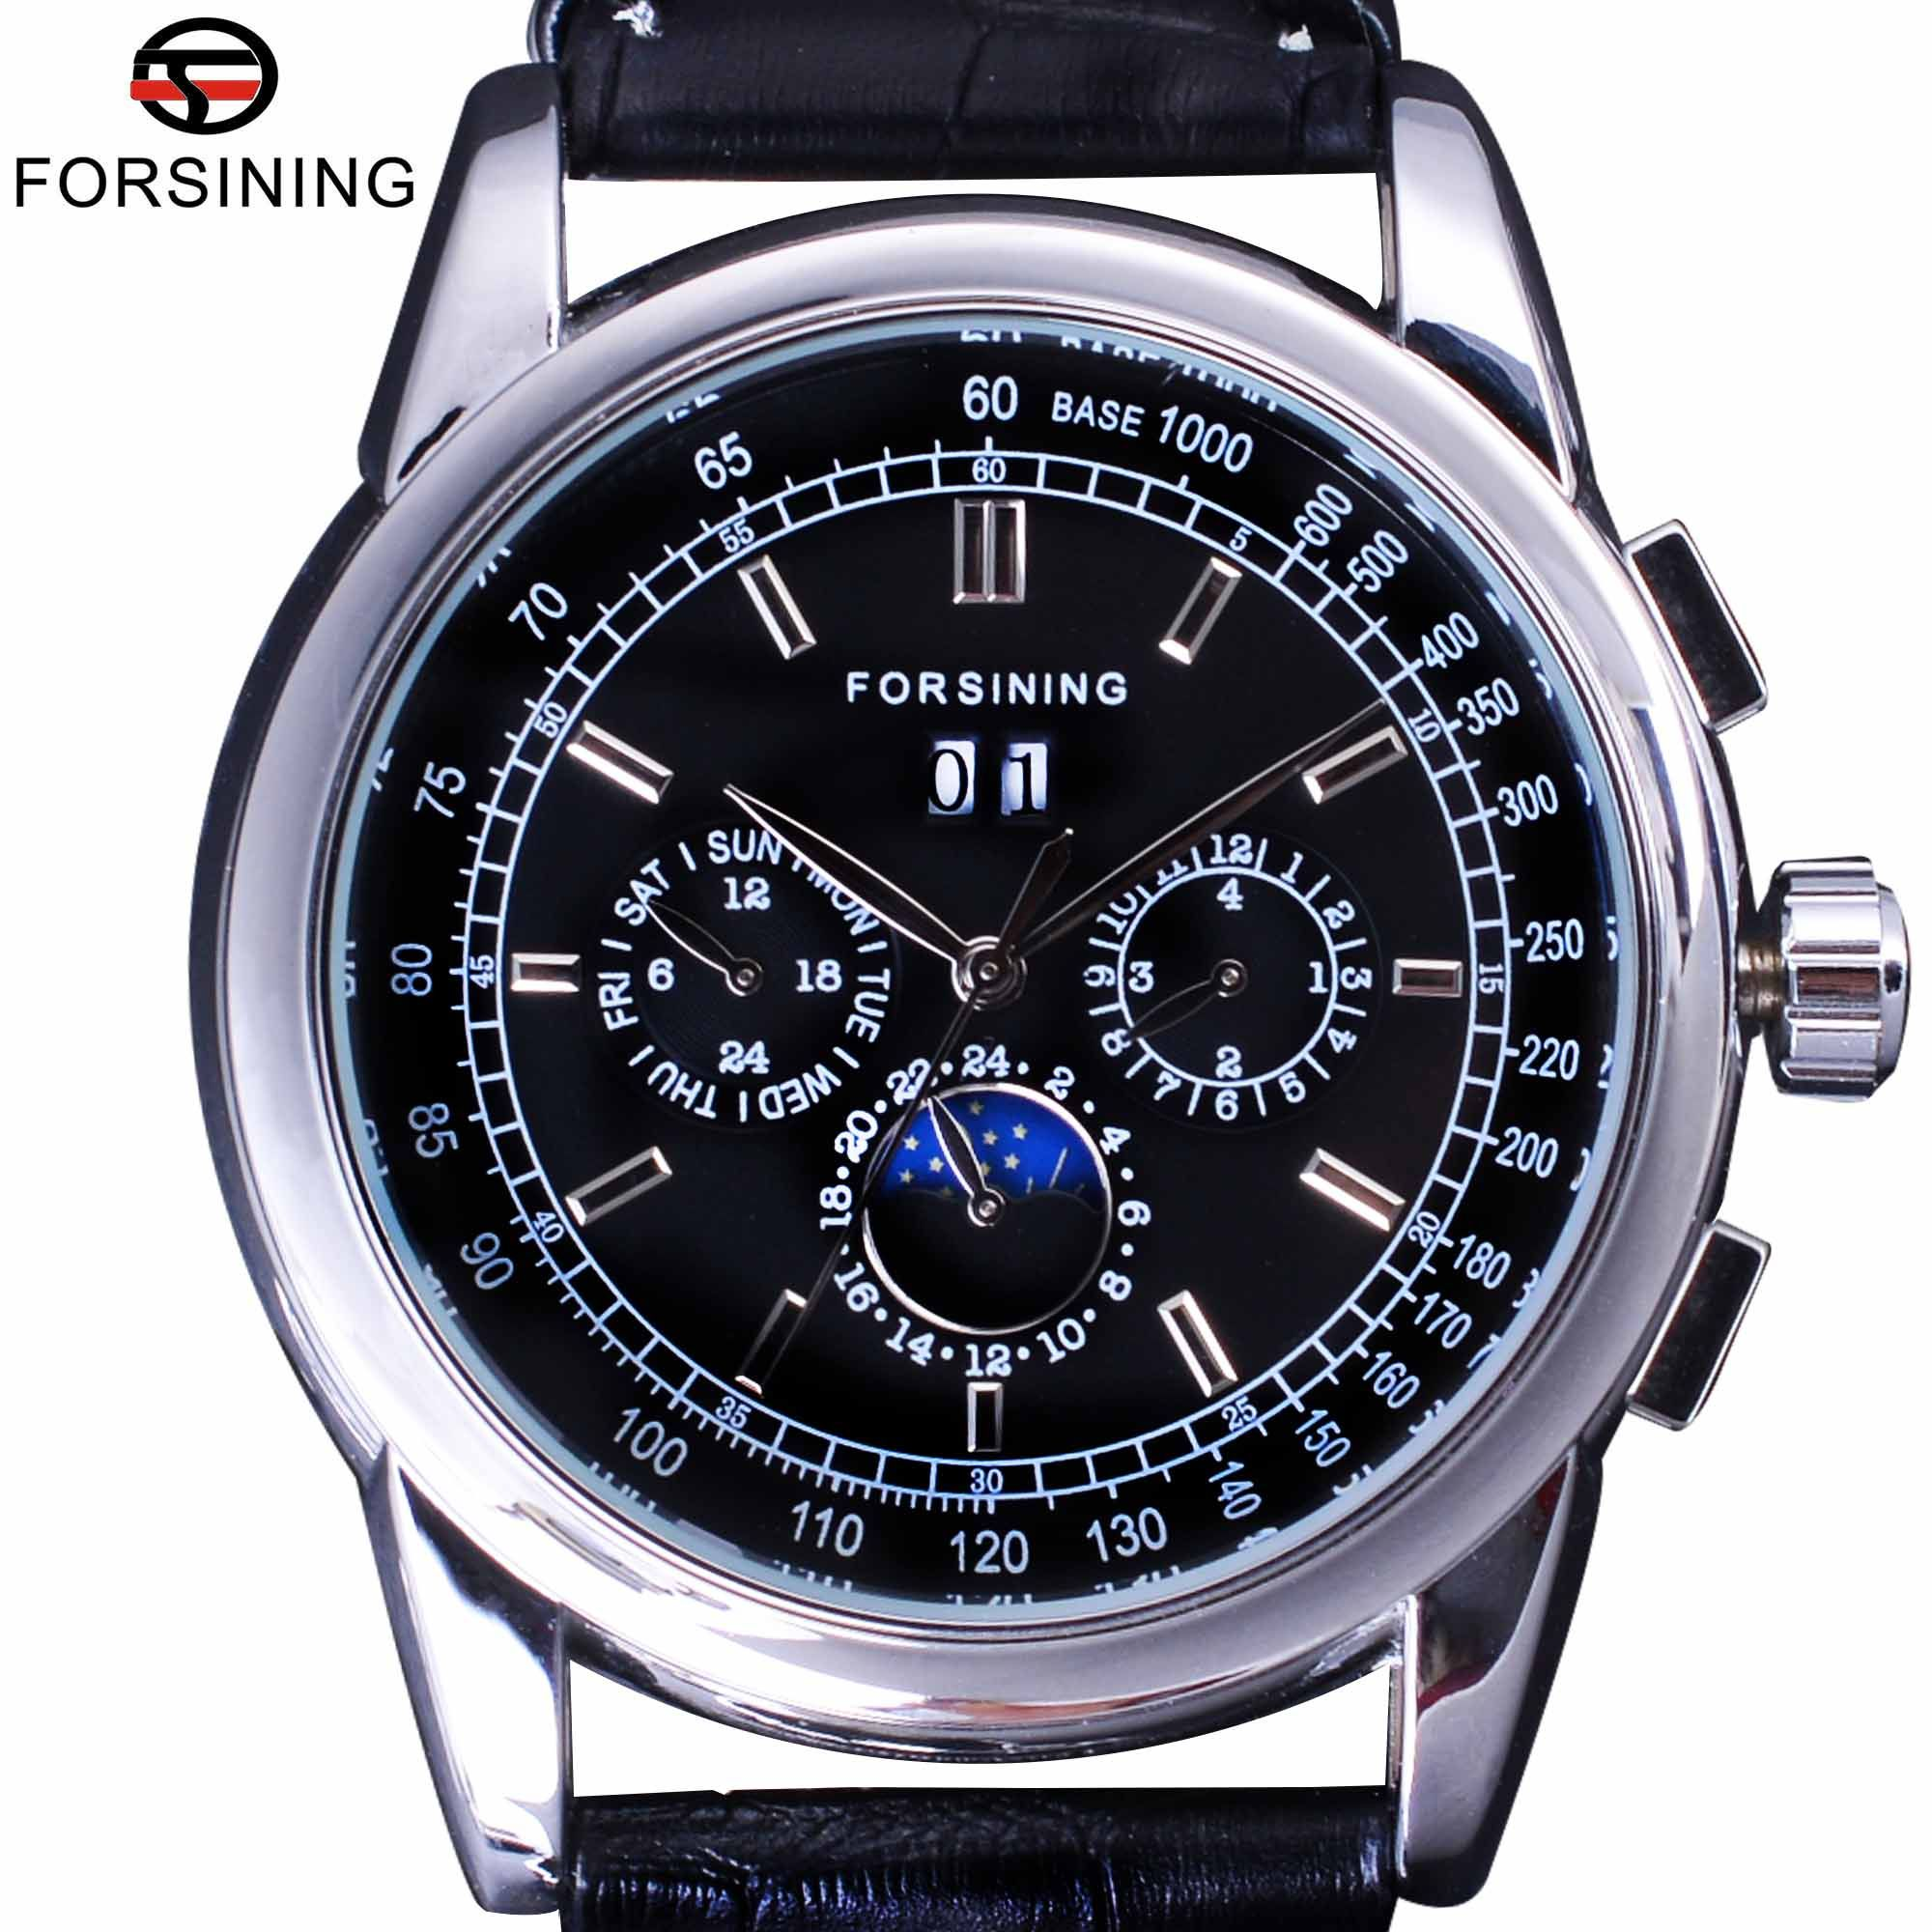 Forsining Luxury Moon Phase Design ShangHai Movement Fashion Casual Wear Automatic Watch Scale Dial Mens Watch Top Brand Luxury